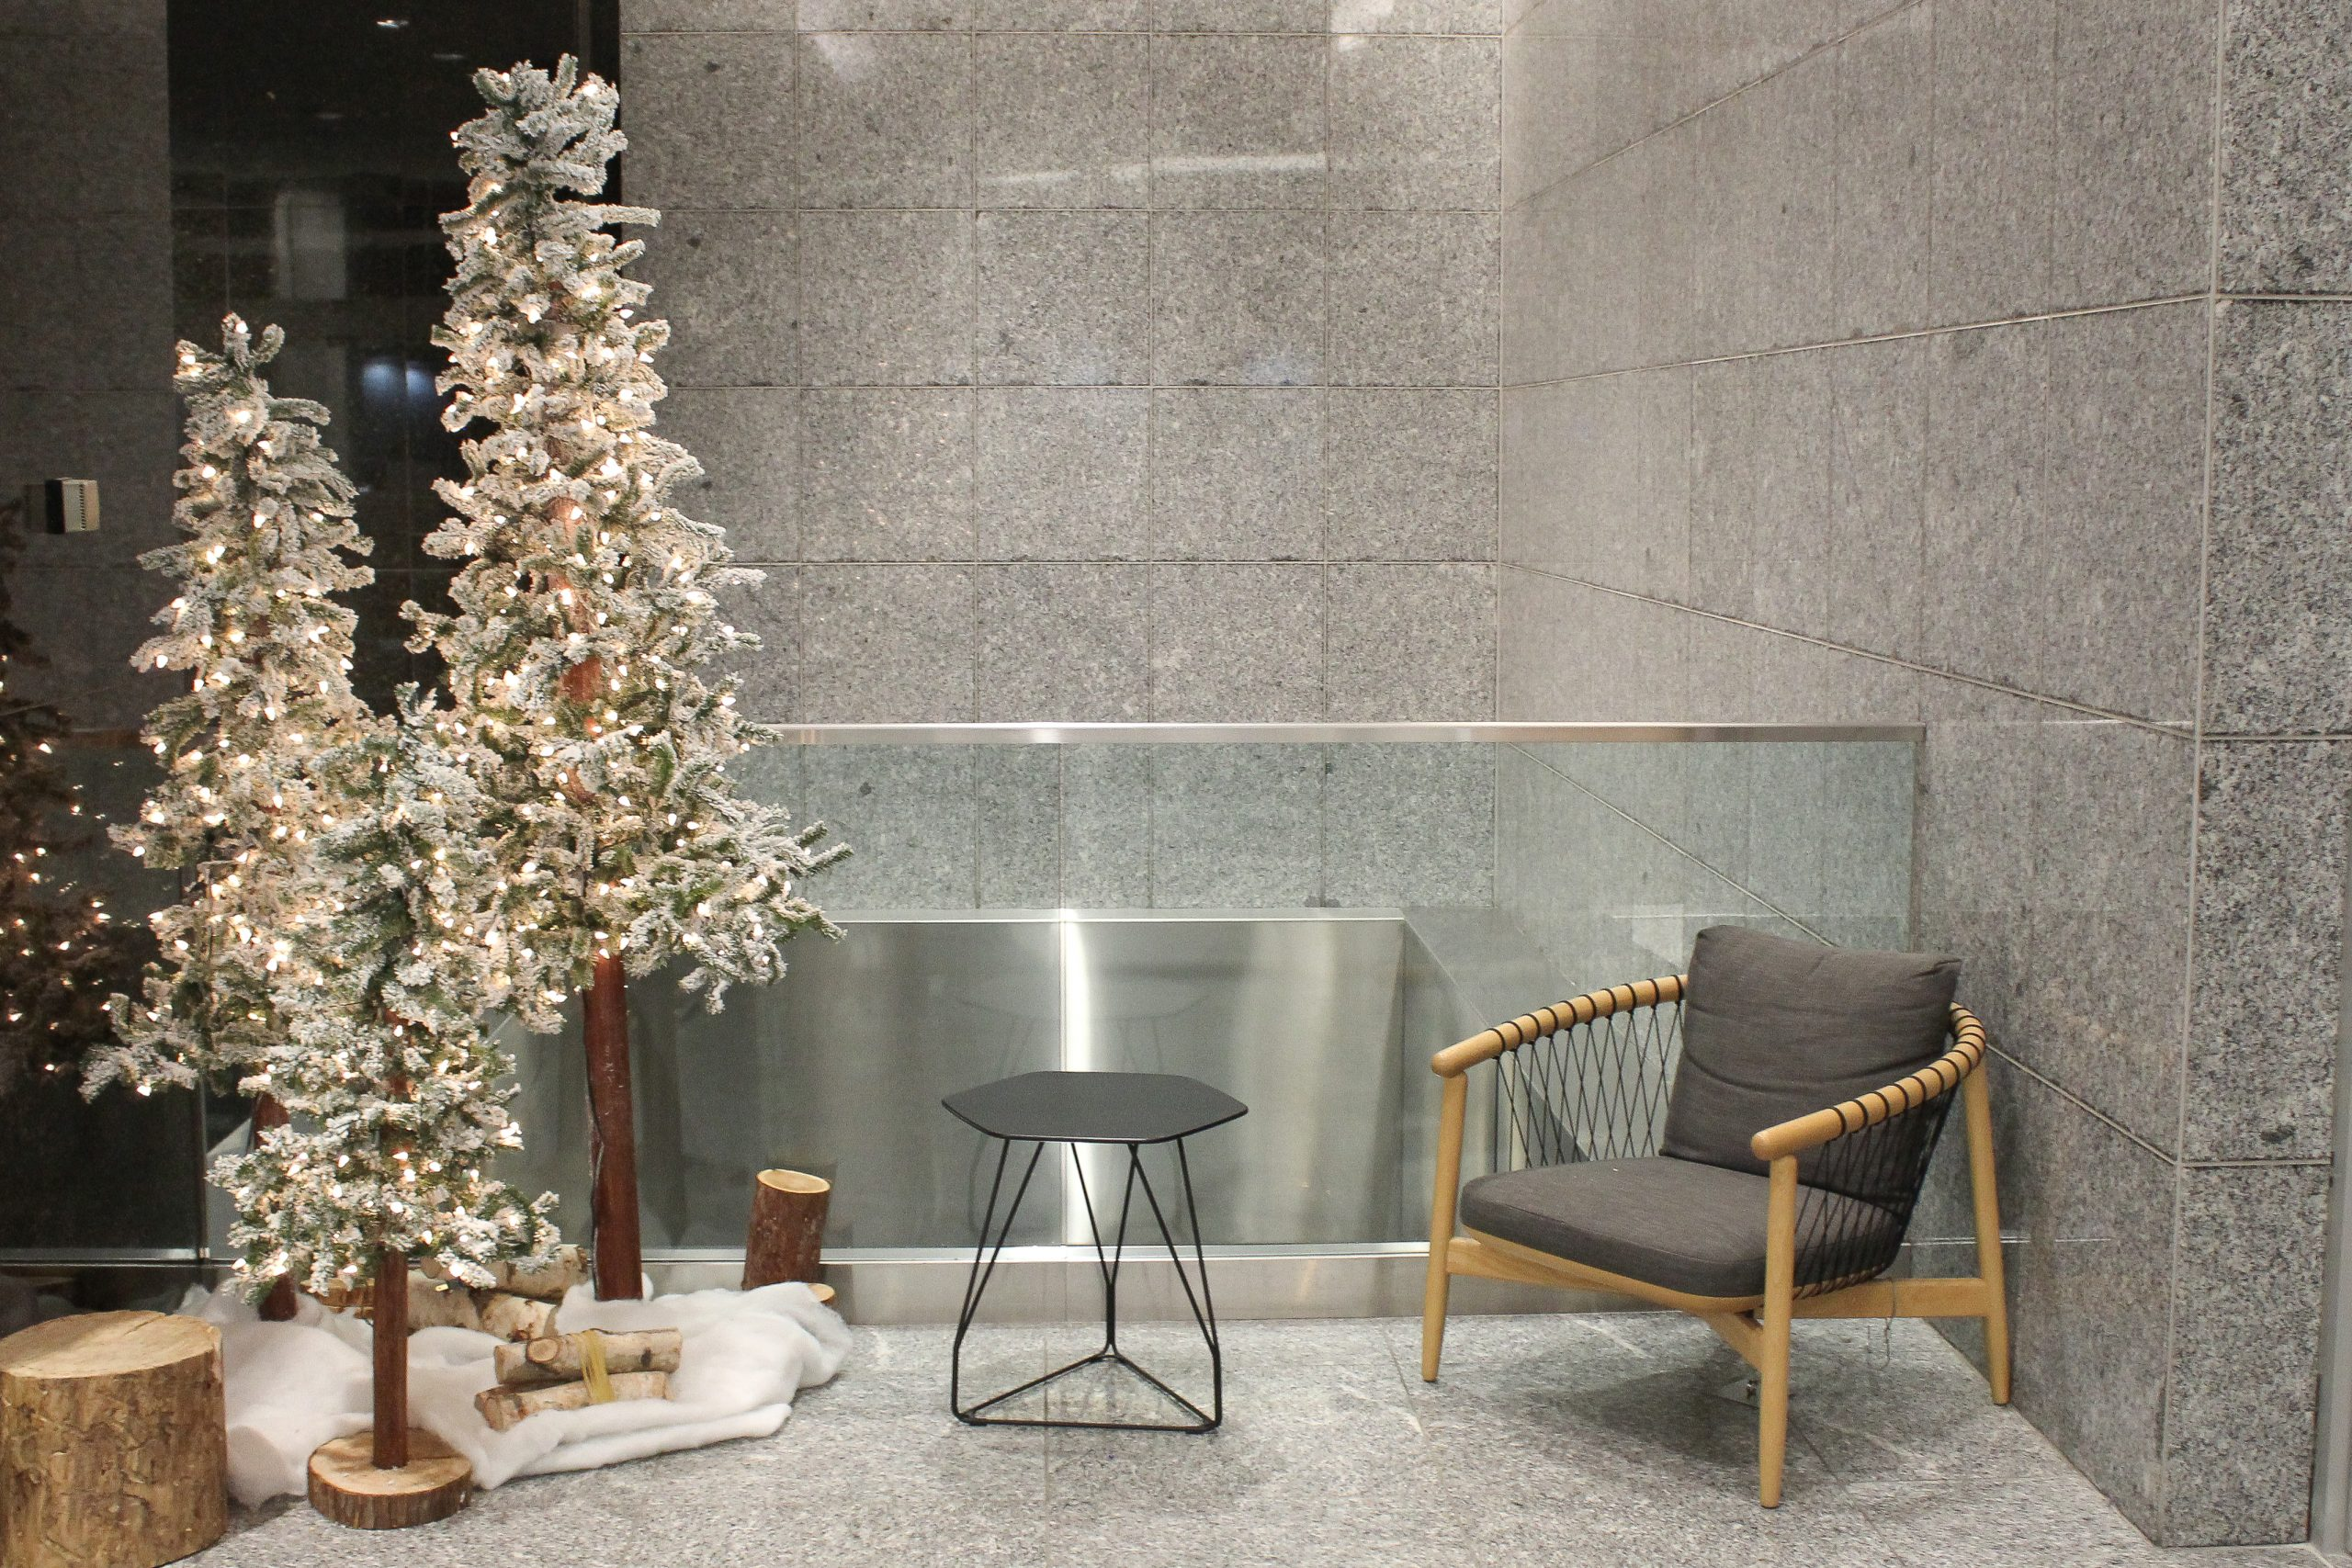 frosted alpine trees in lobby vignette with snow blanket and wood accents